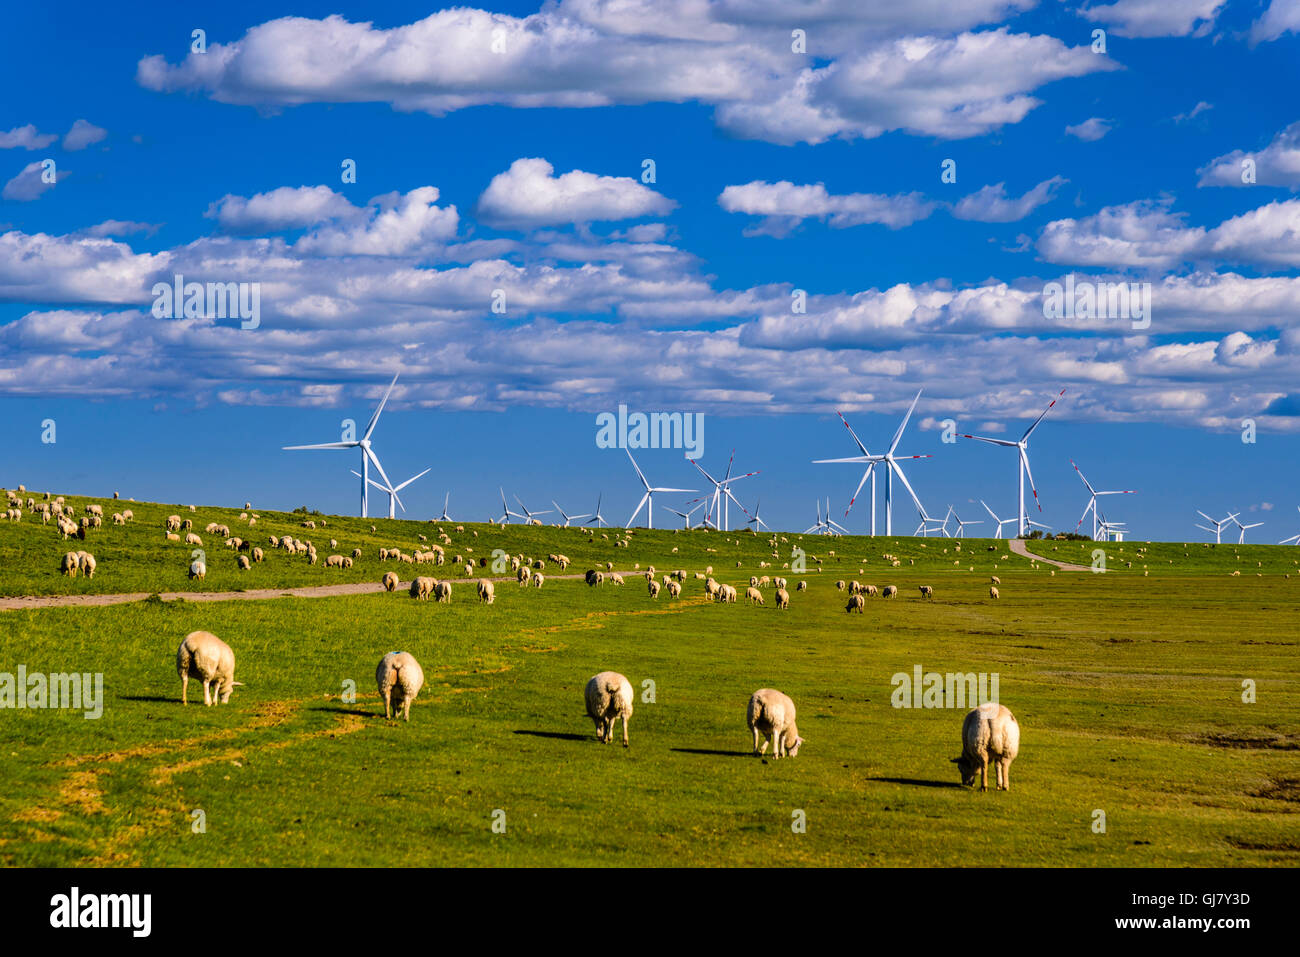 Sonke Nissen Koog Stock Photos & Sonke Nissen Koog Stock Images - Alamy